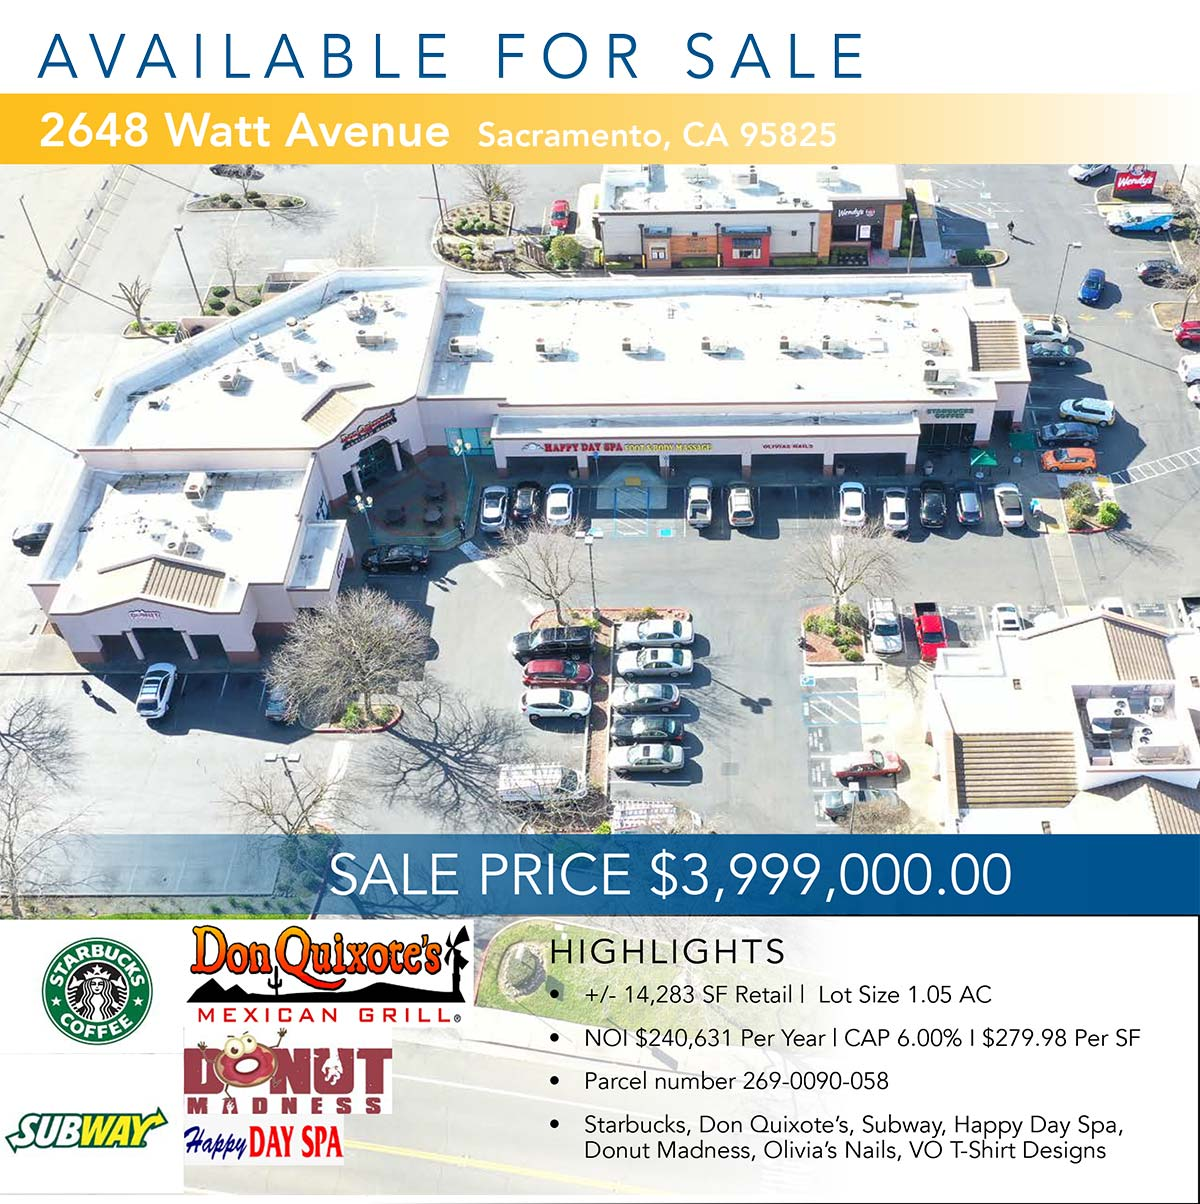 2648 Watt Ave Sacramento, CA 95821 • Sale Price $3,999,000.00 • +/- 14,283 SF Retail | Lot Size 1.05 AC • Parcel number 269-0090-058